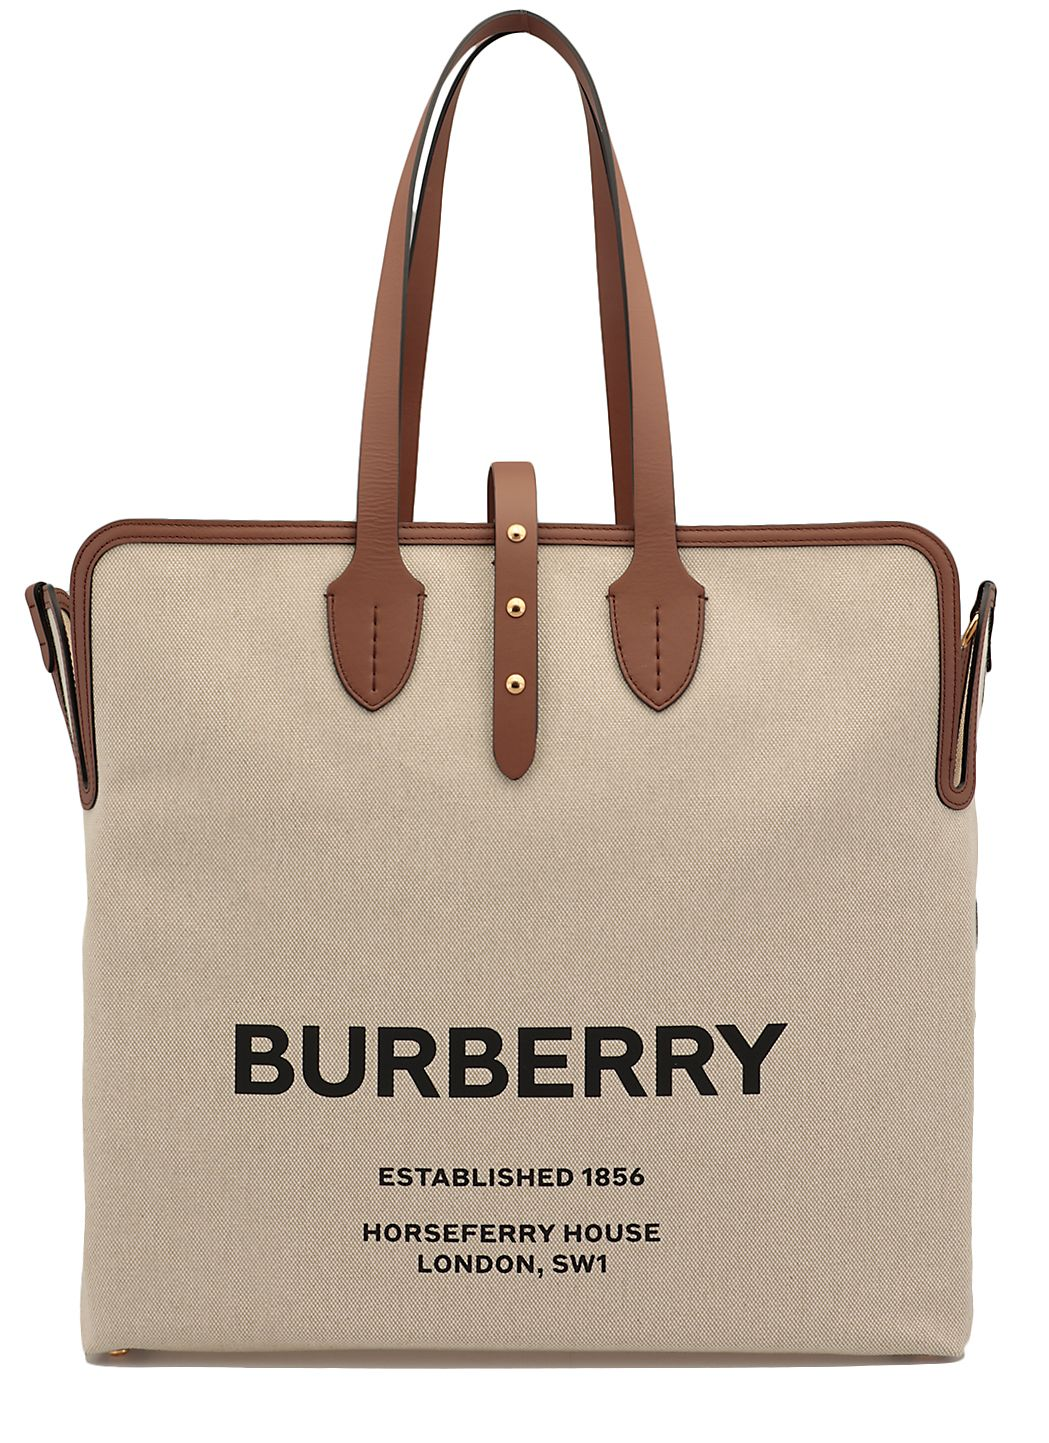 Cotton canvas and leather tote bag